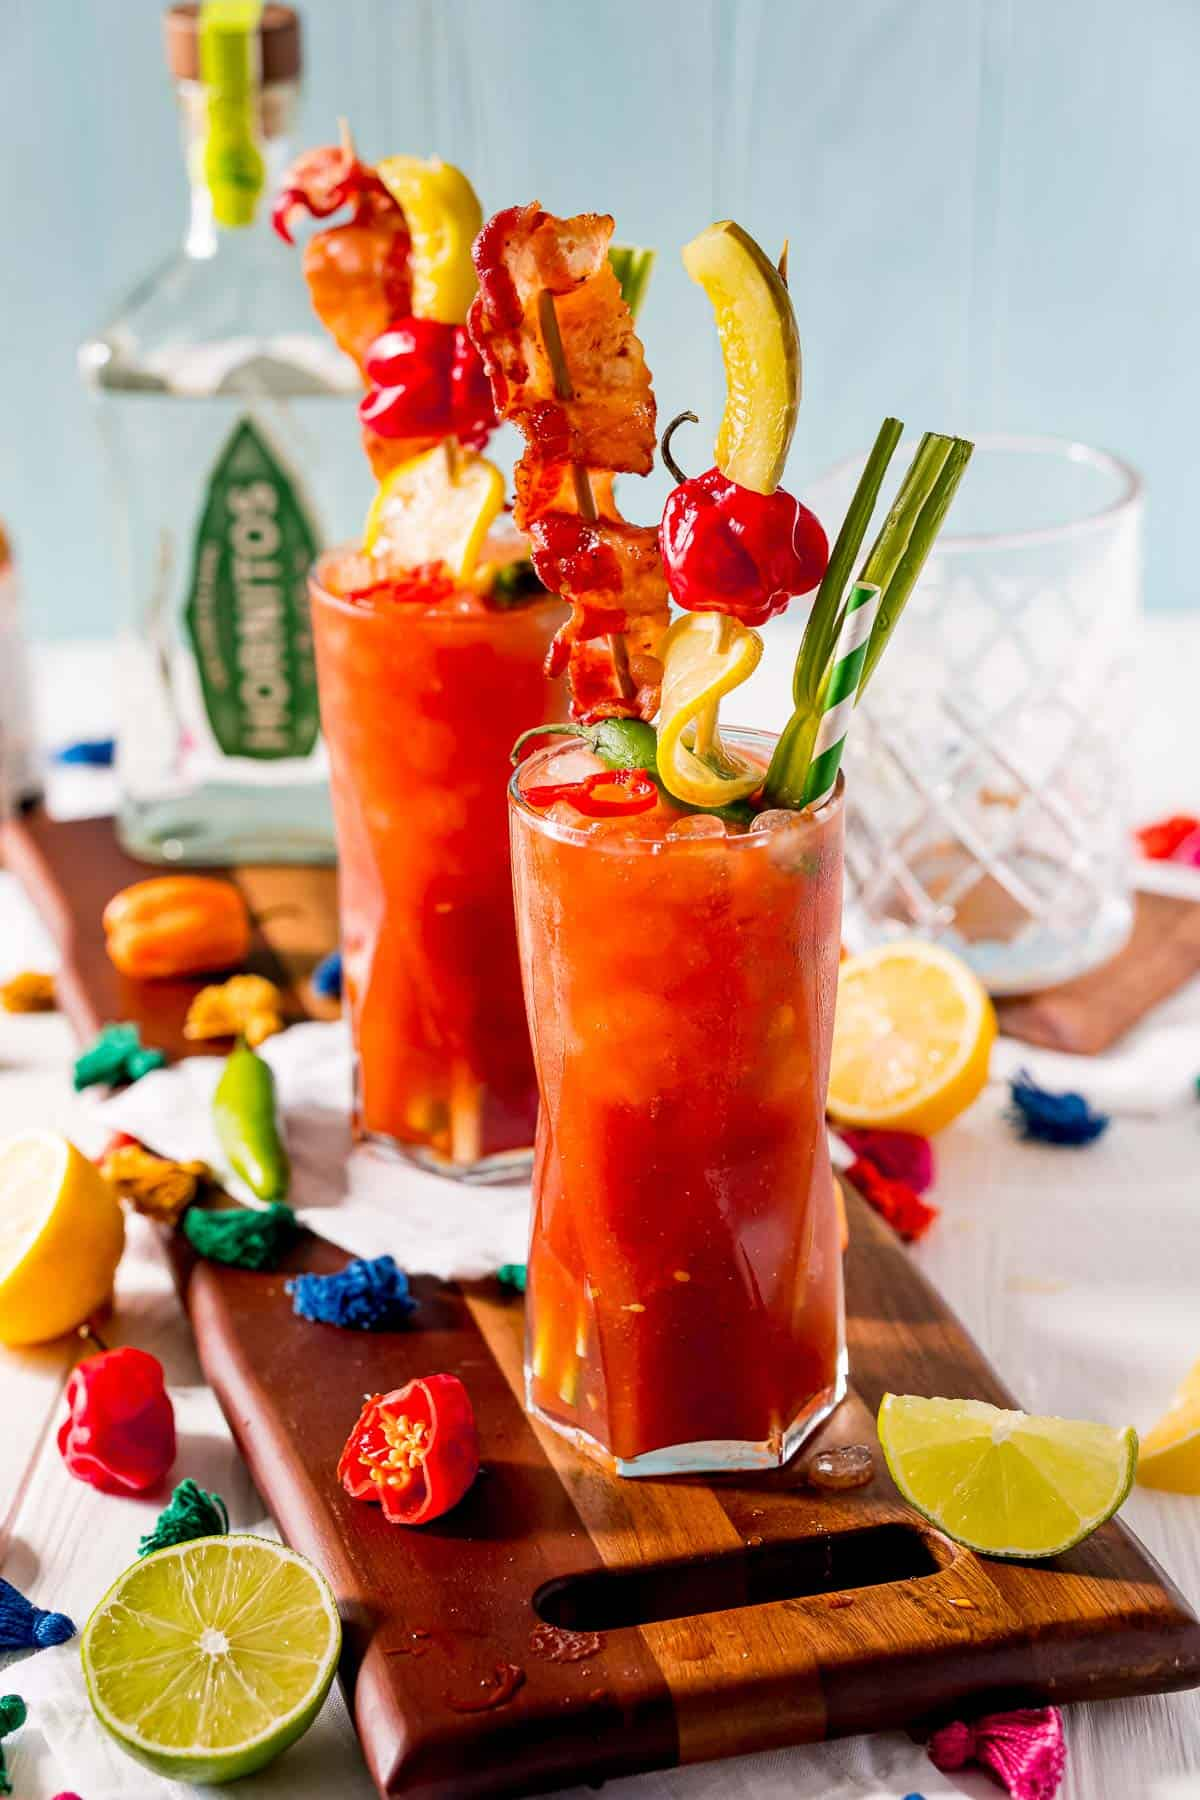 Tomato juice based cocktails on a wooden board.